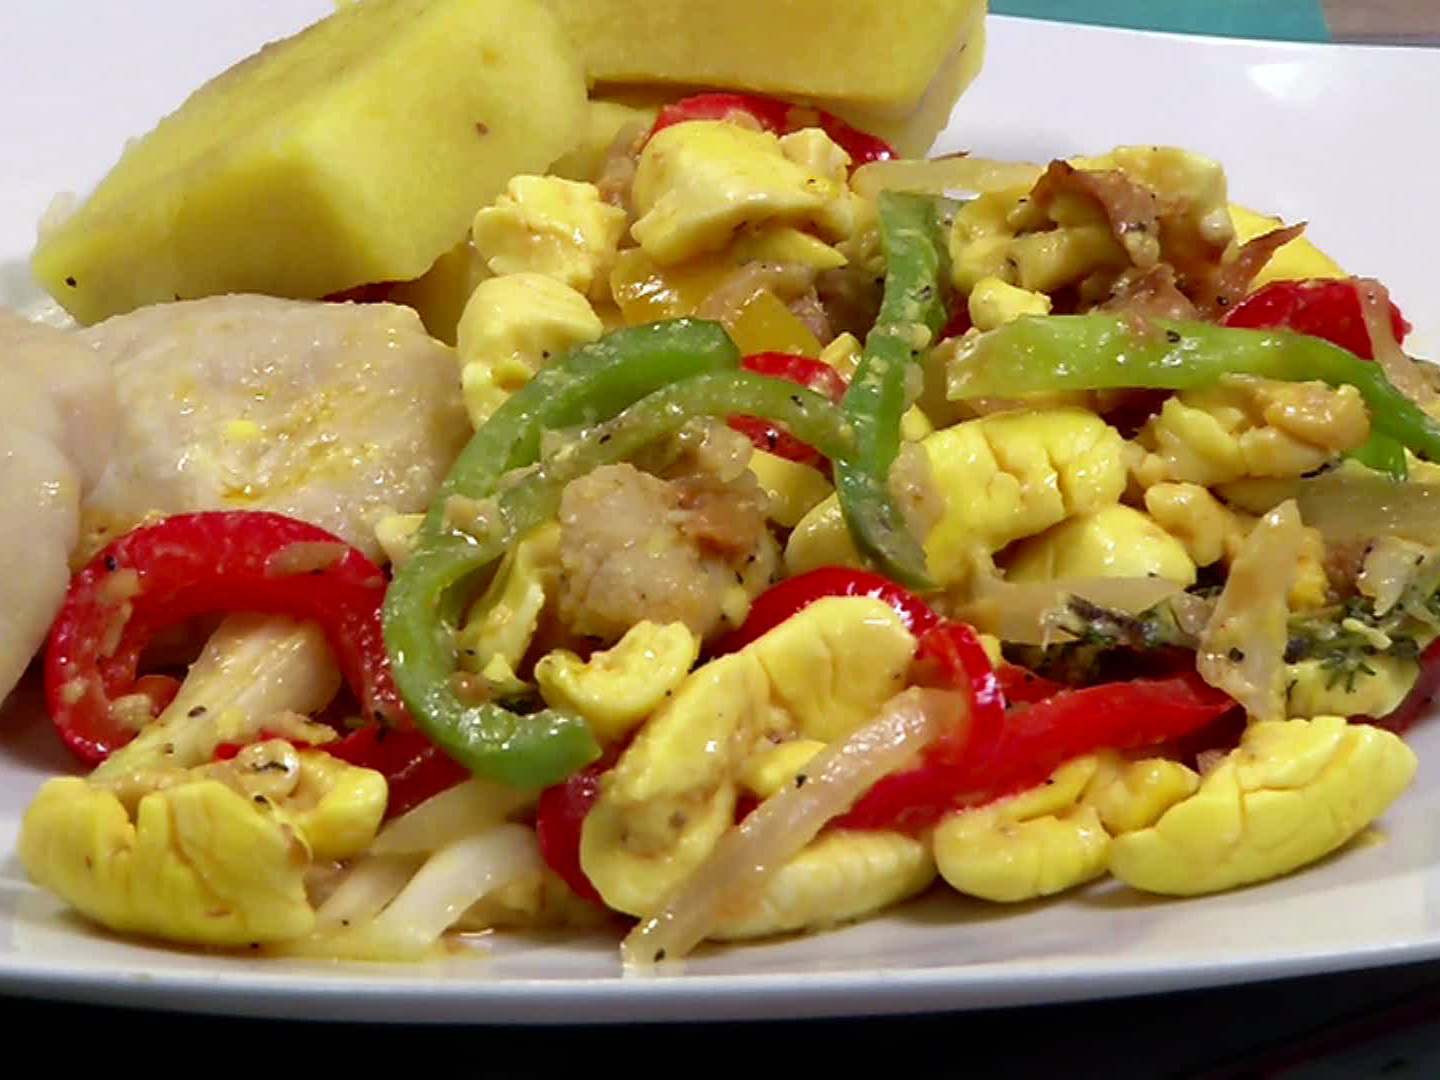 DV1012H_ackee-and-saltfish_s4x3